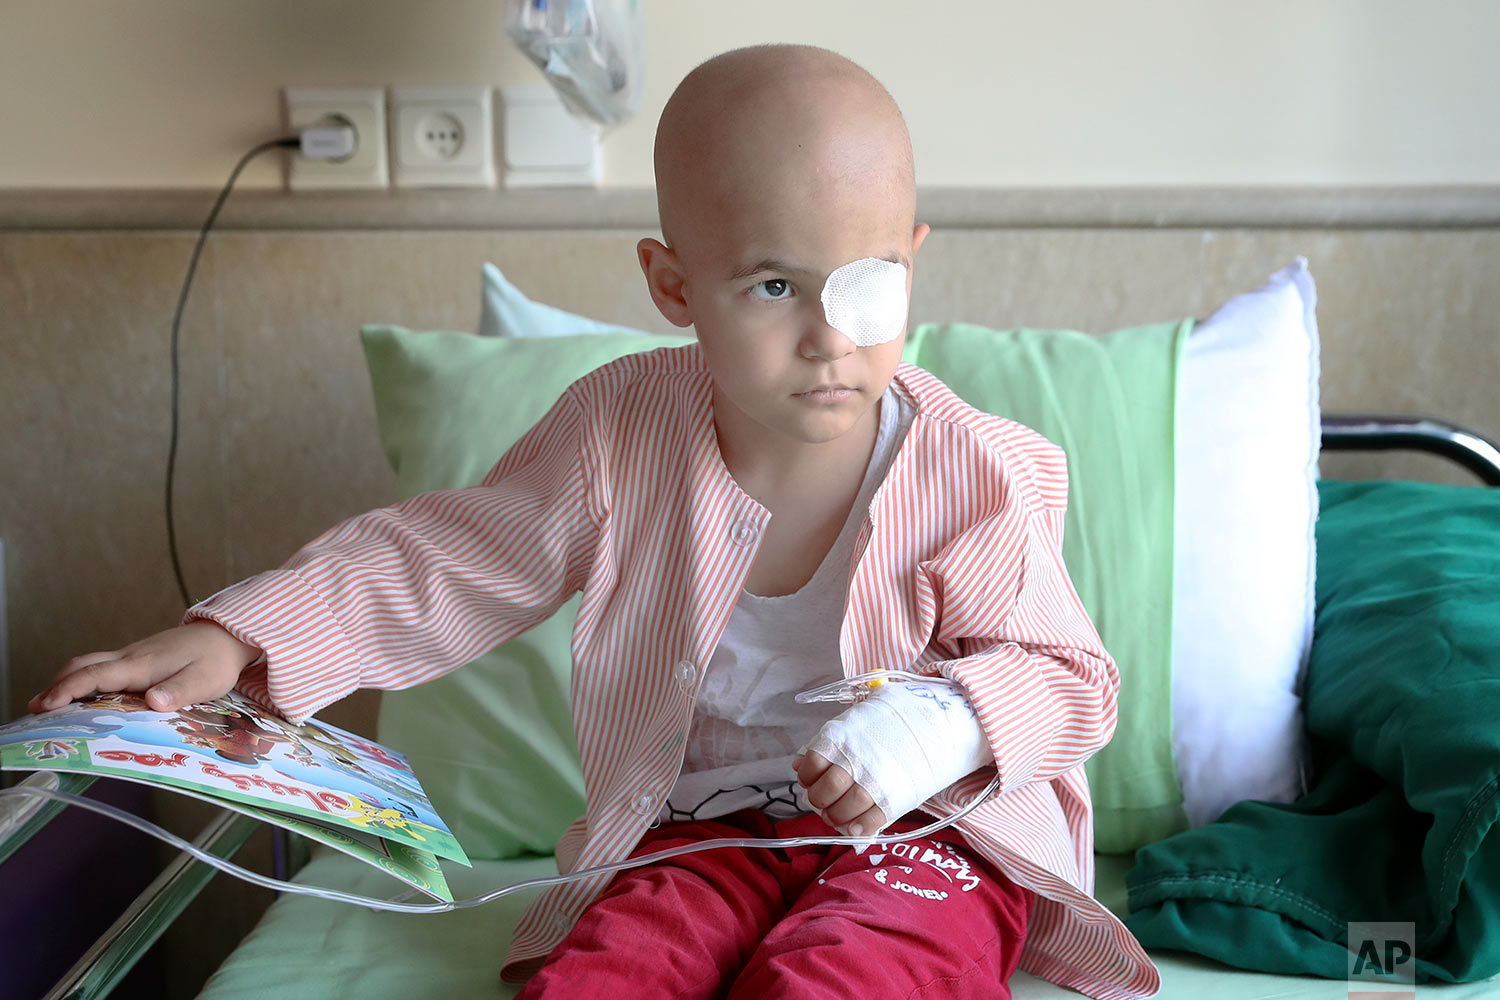 Parsa Amini, a 5-year-old boy suffering from eye cancer, sits on his bed at Mahak Children's Hospital, in Tehran, Iran. (AP Photo/Ebrahim Noroozi)